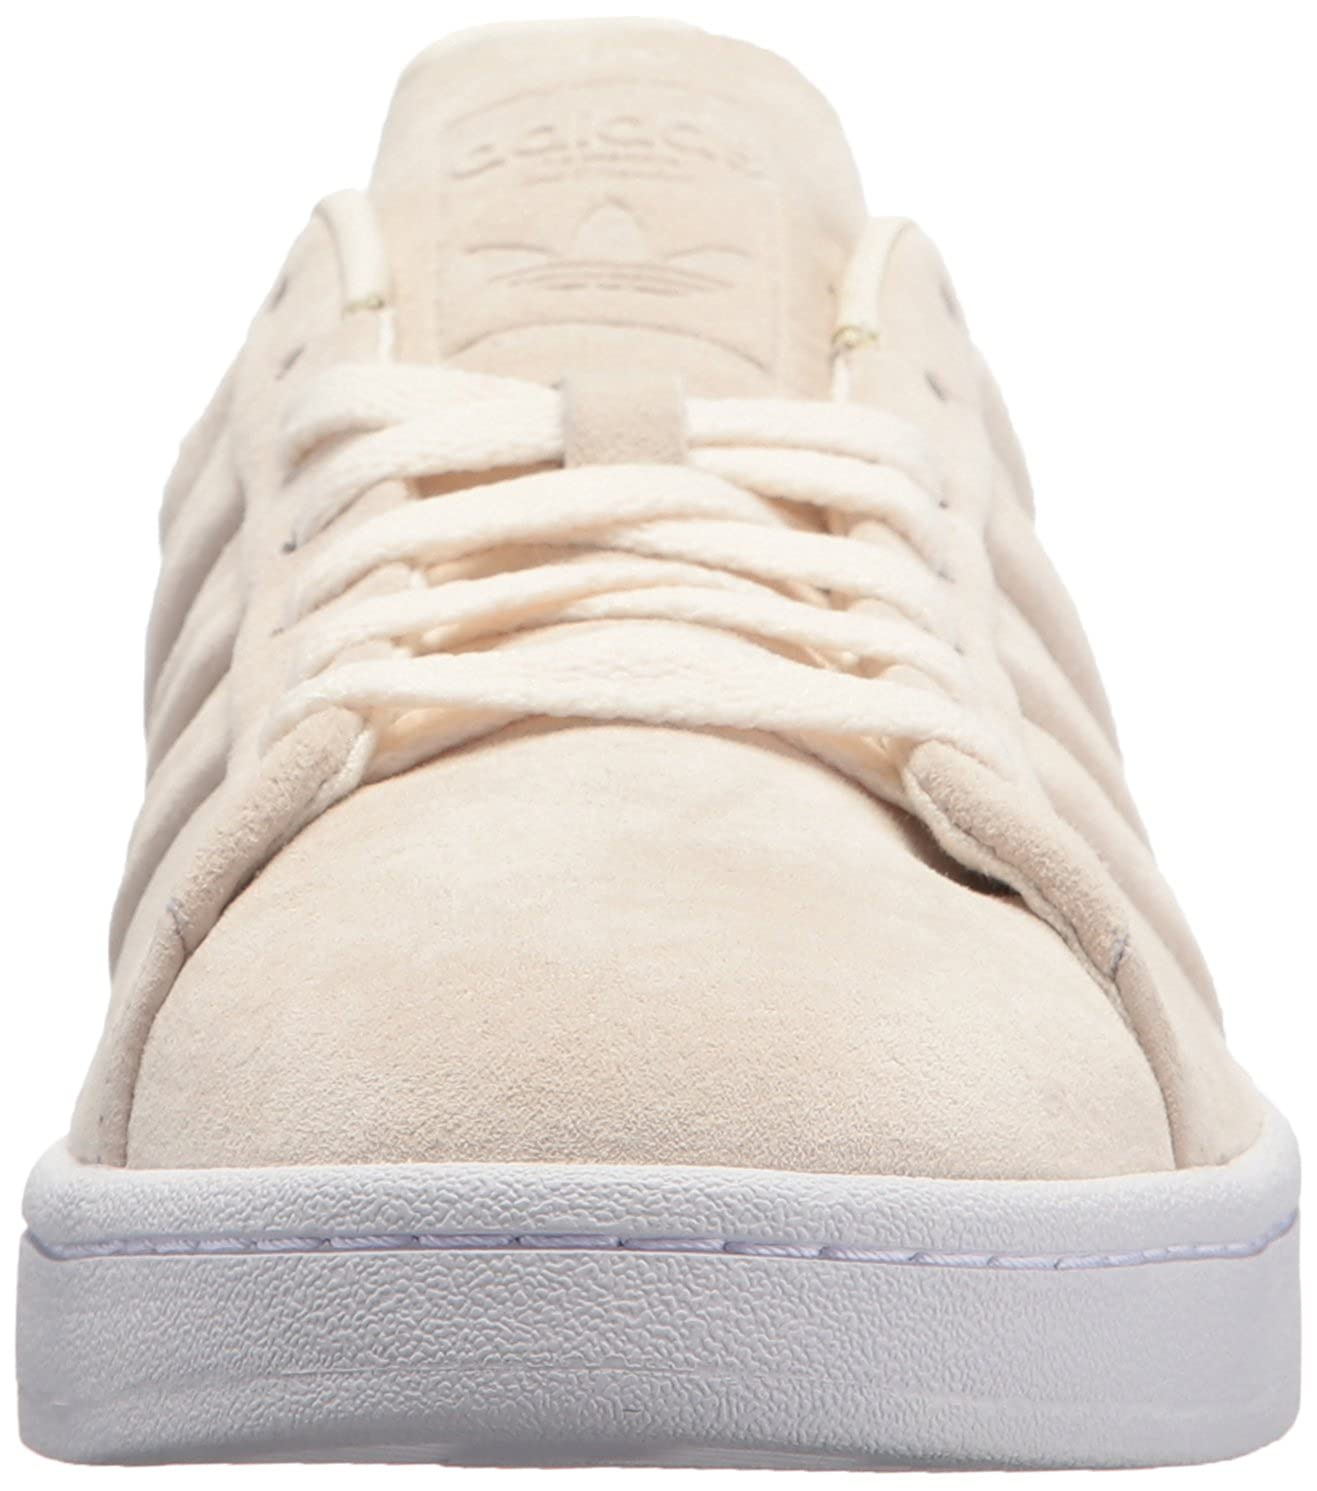 Adidas-Campus-Men-039-s-Casual-Fashion-Sneakers-Retro-Athletic-Shoes thumbnail 19